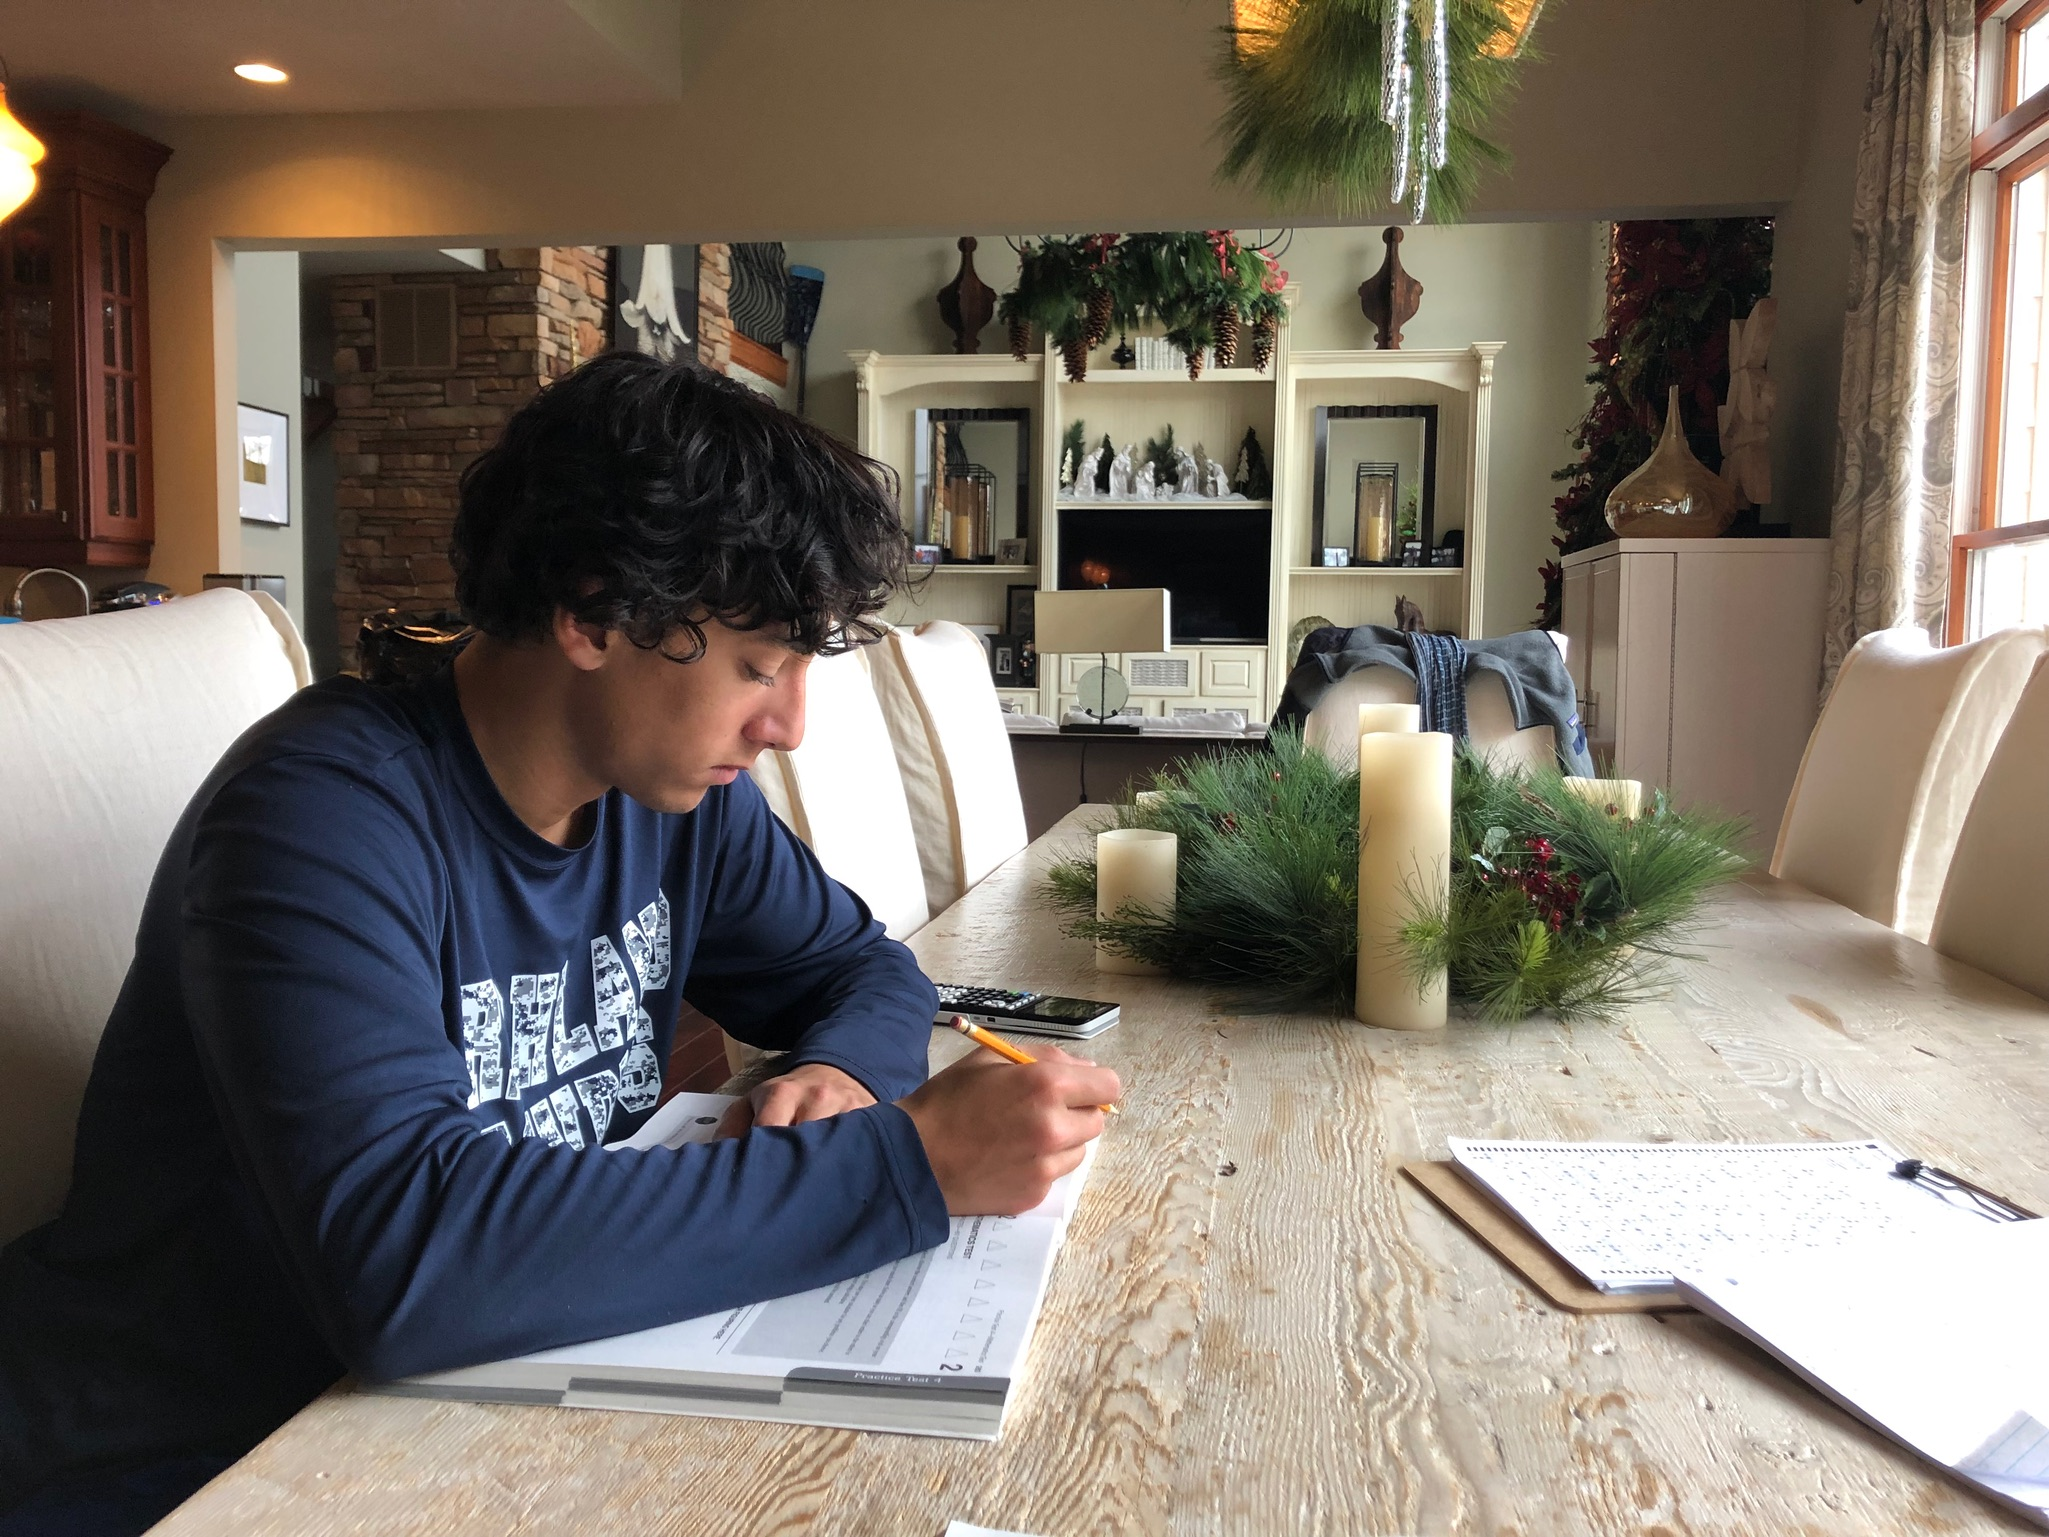 3 basic approaches to homeschooling this fall